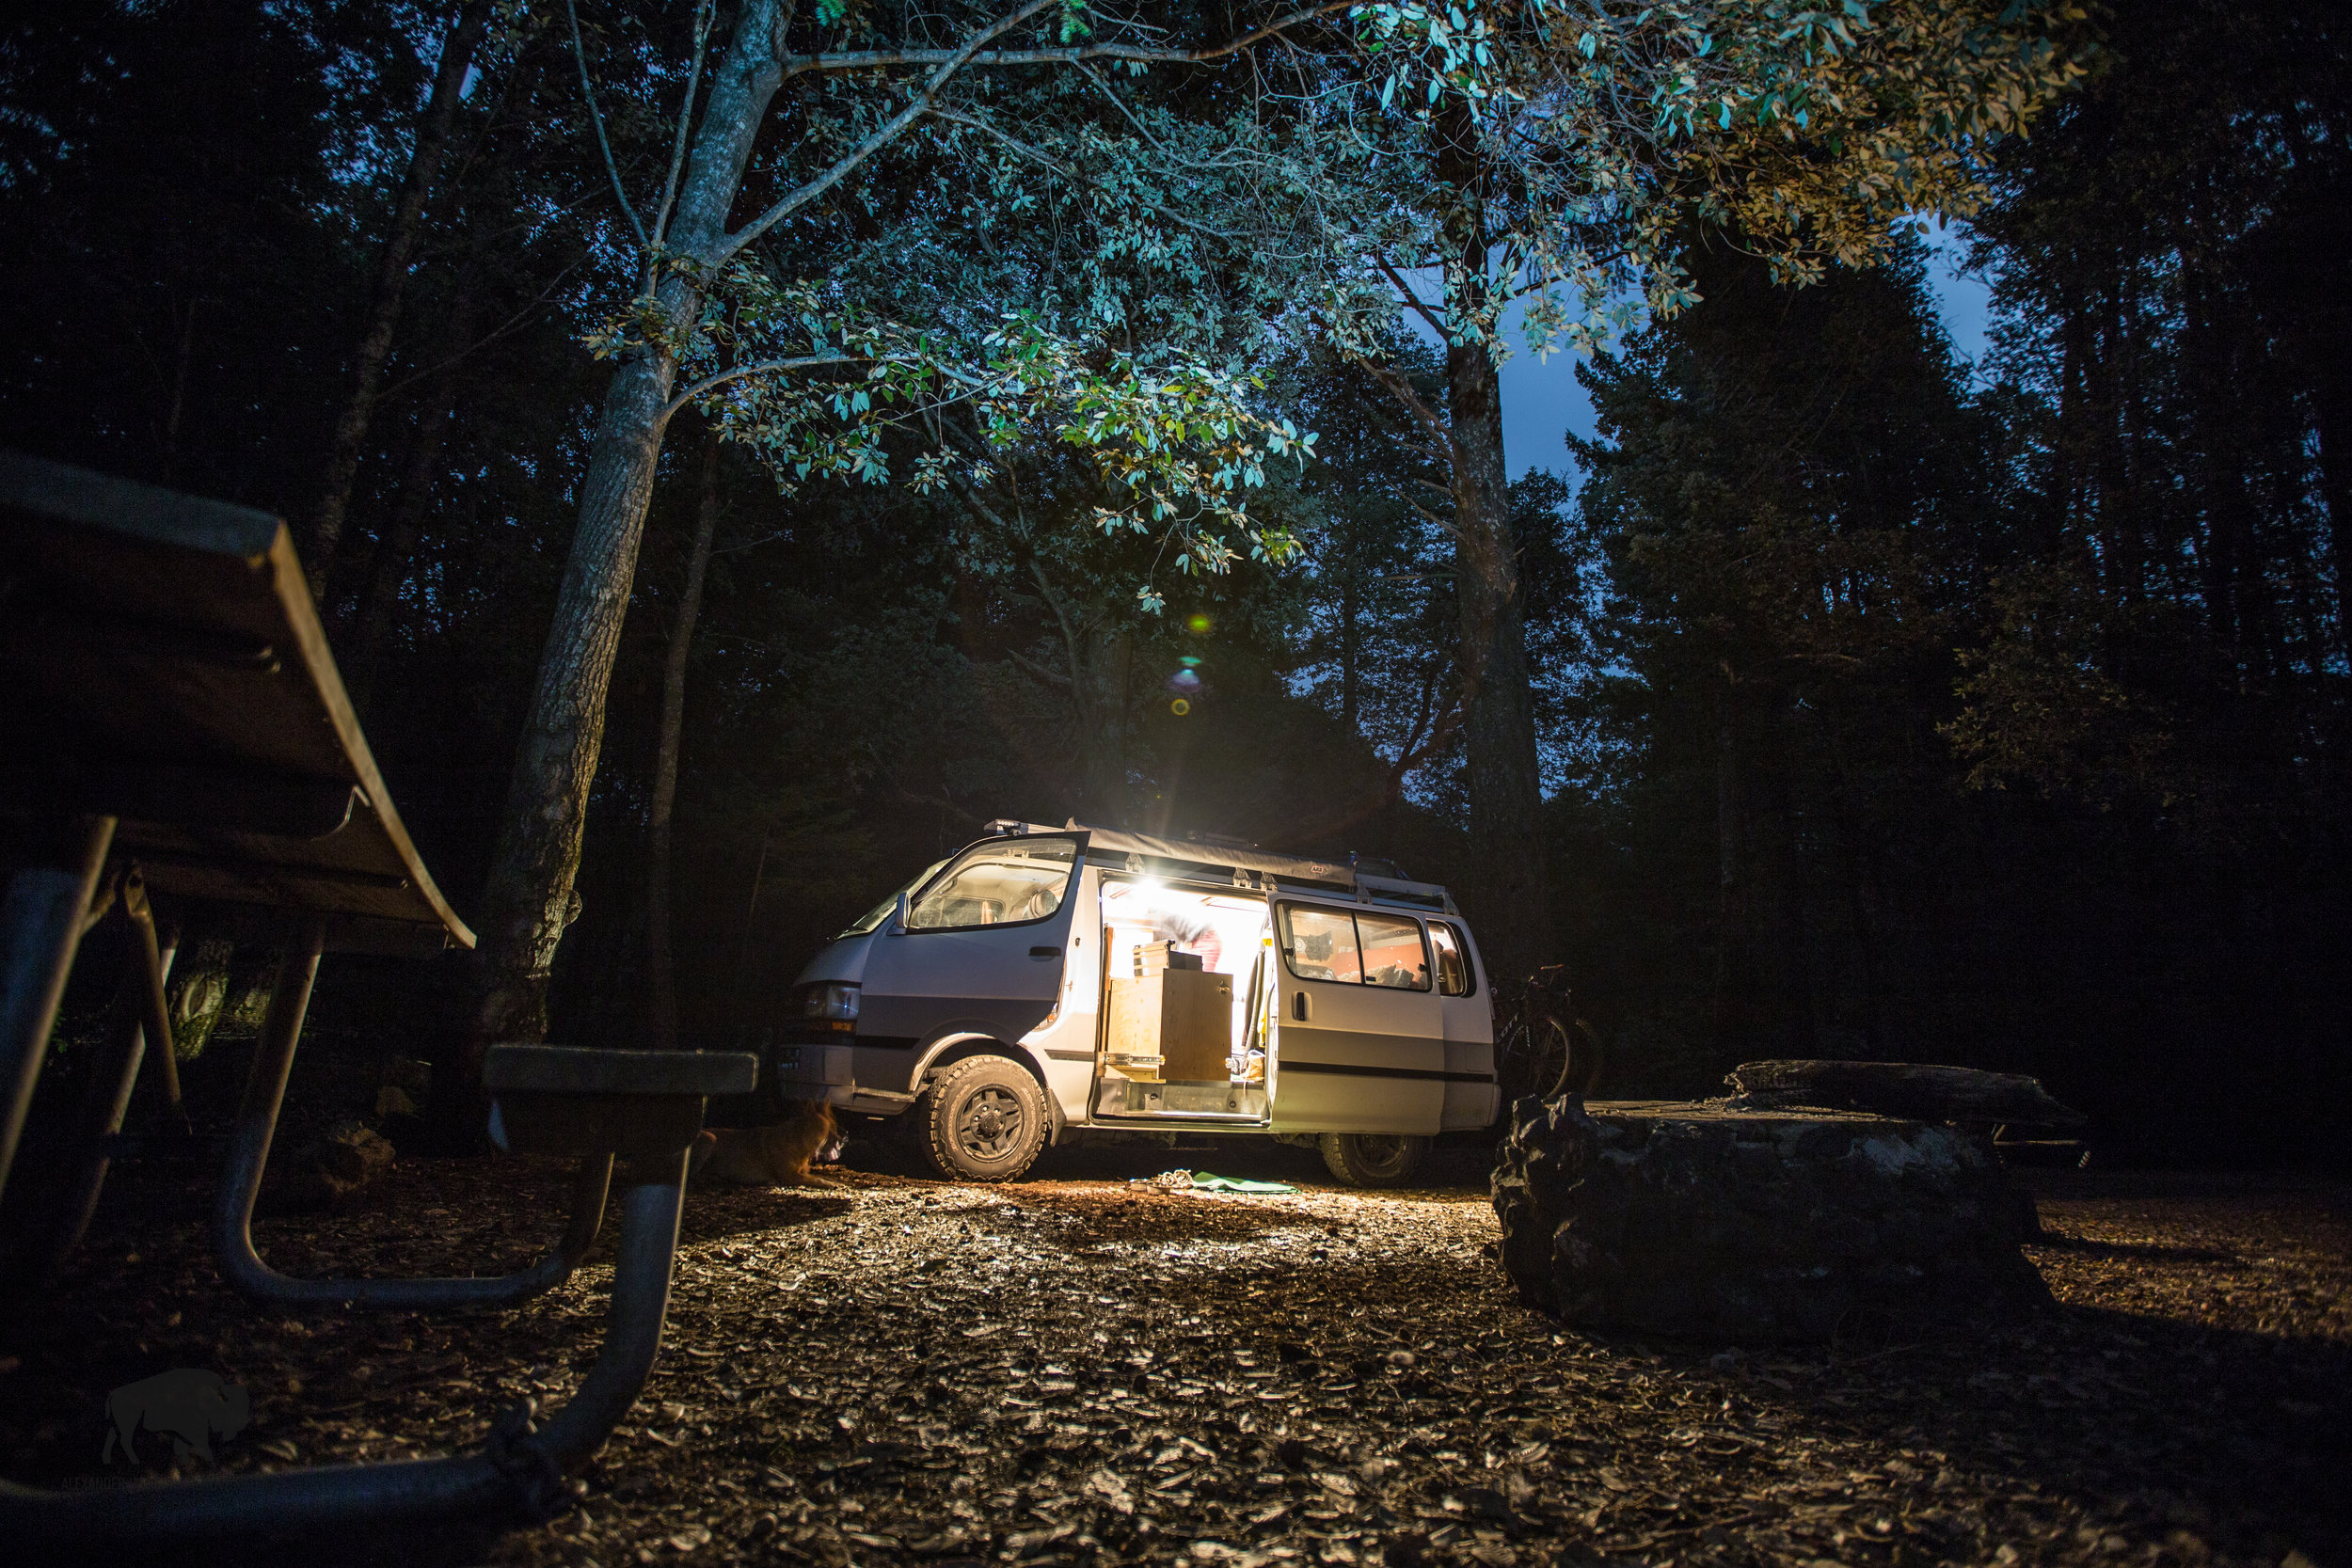 vanlife 2 (1 of 4).jpg